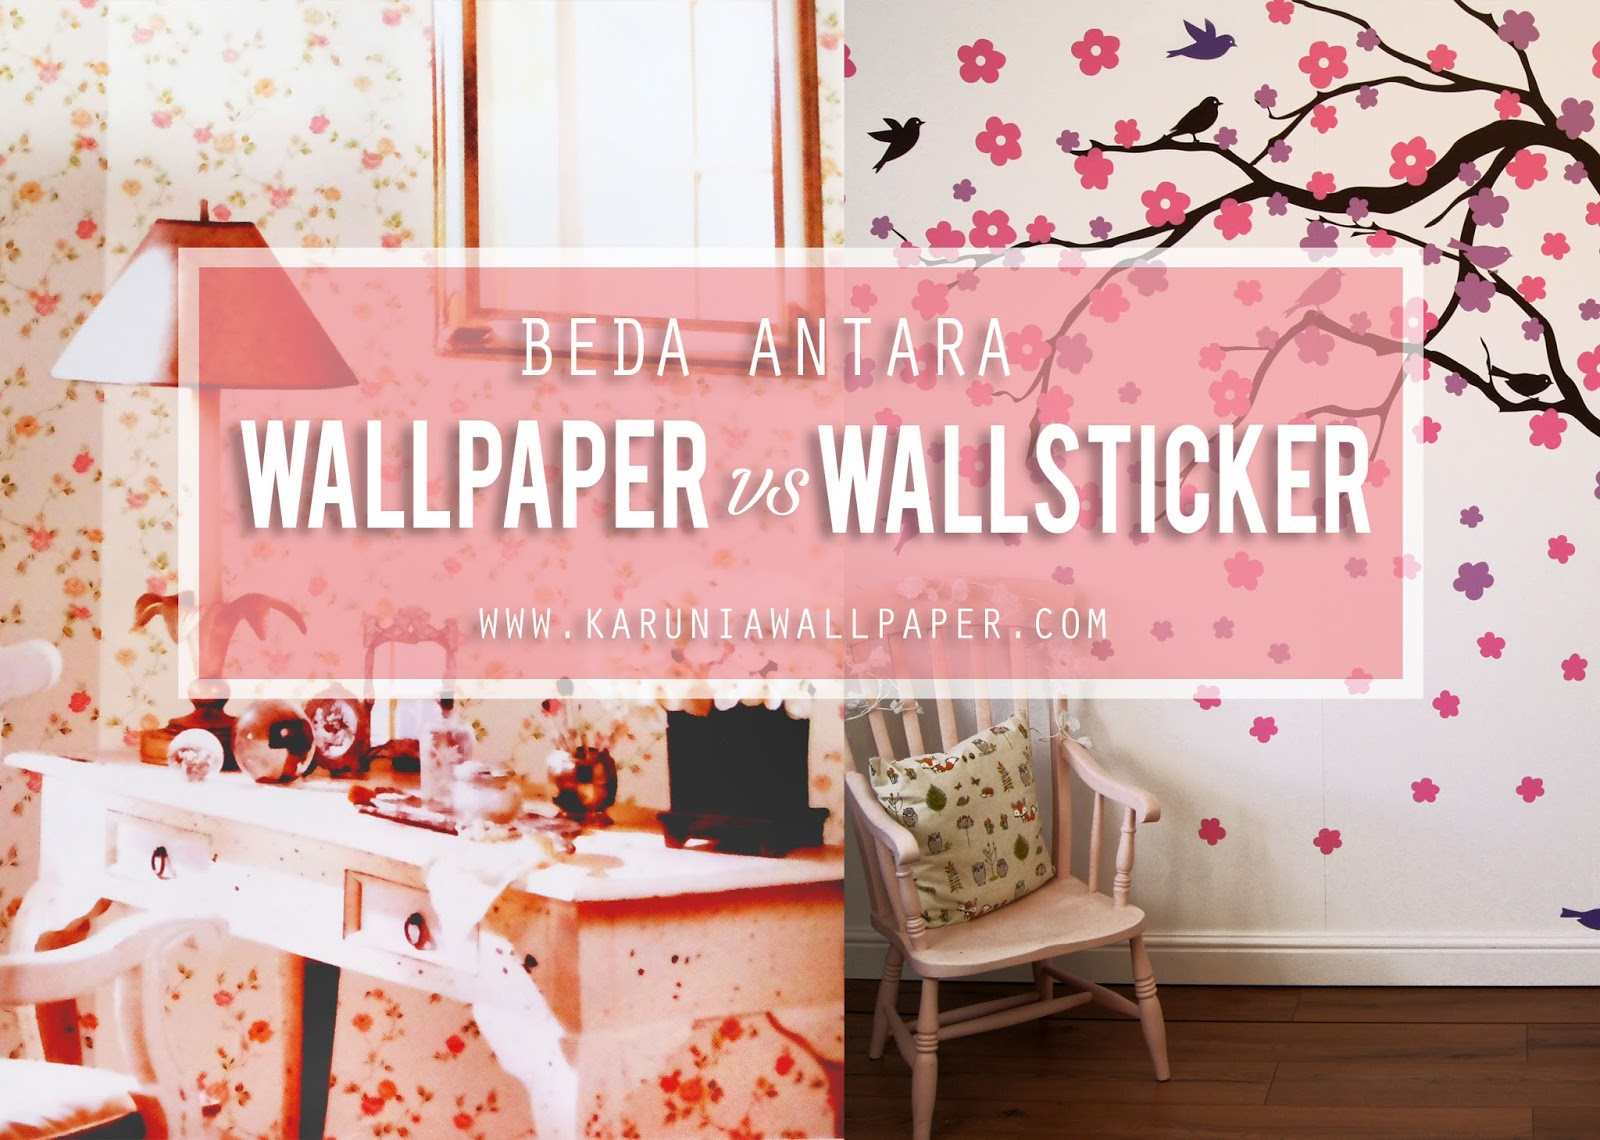 wallpaper wallsticker surabaya